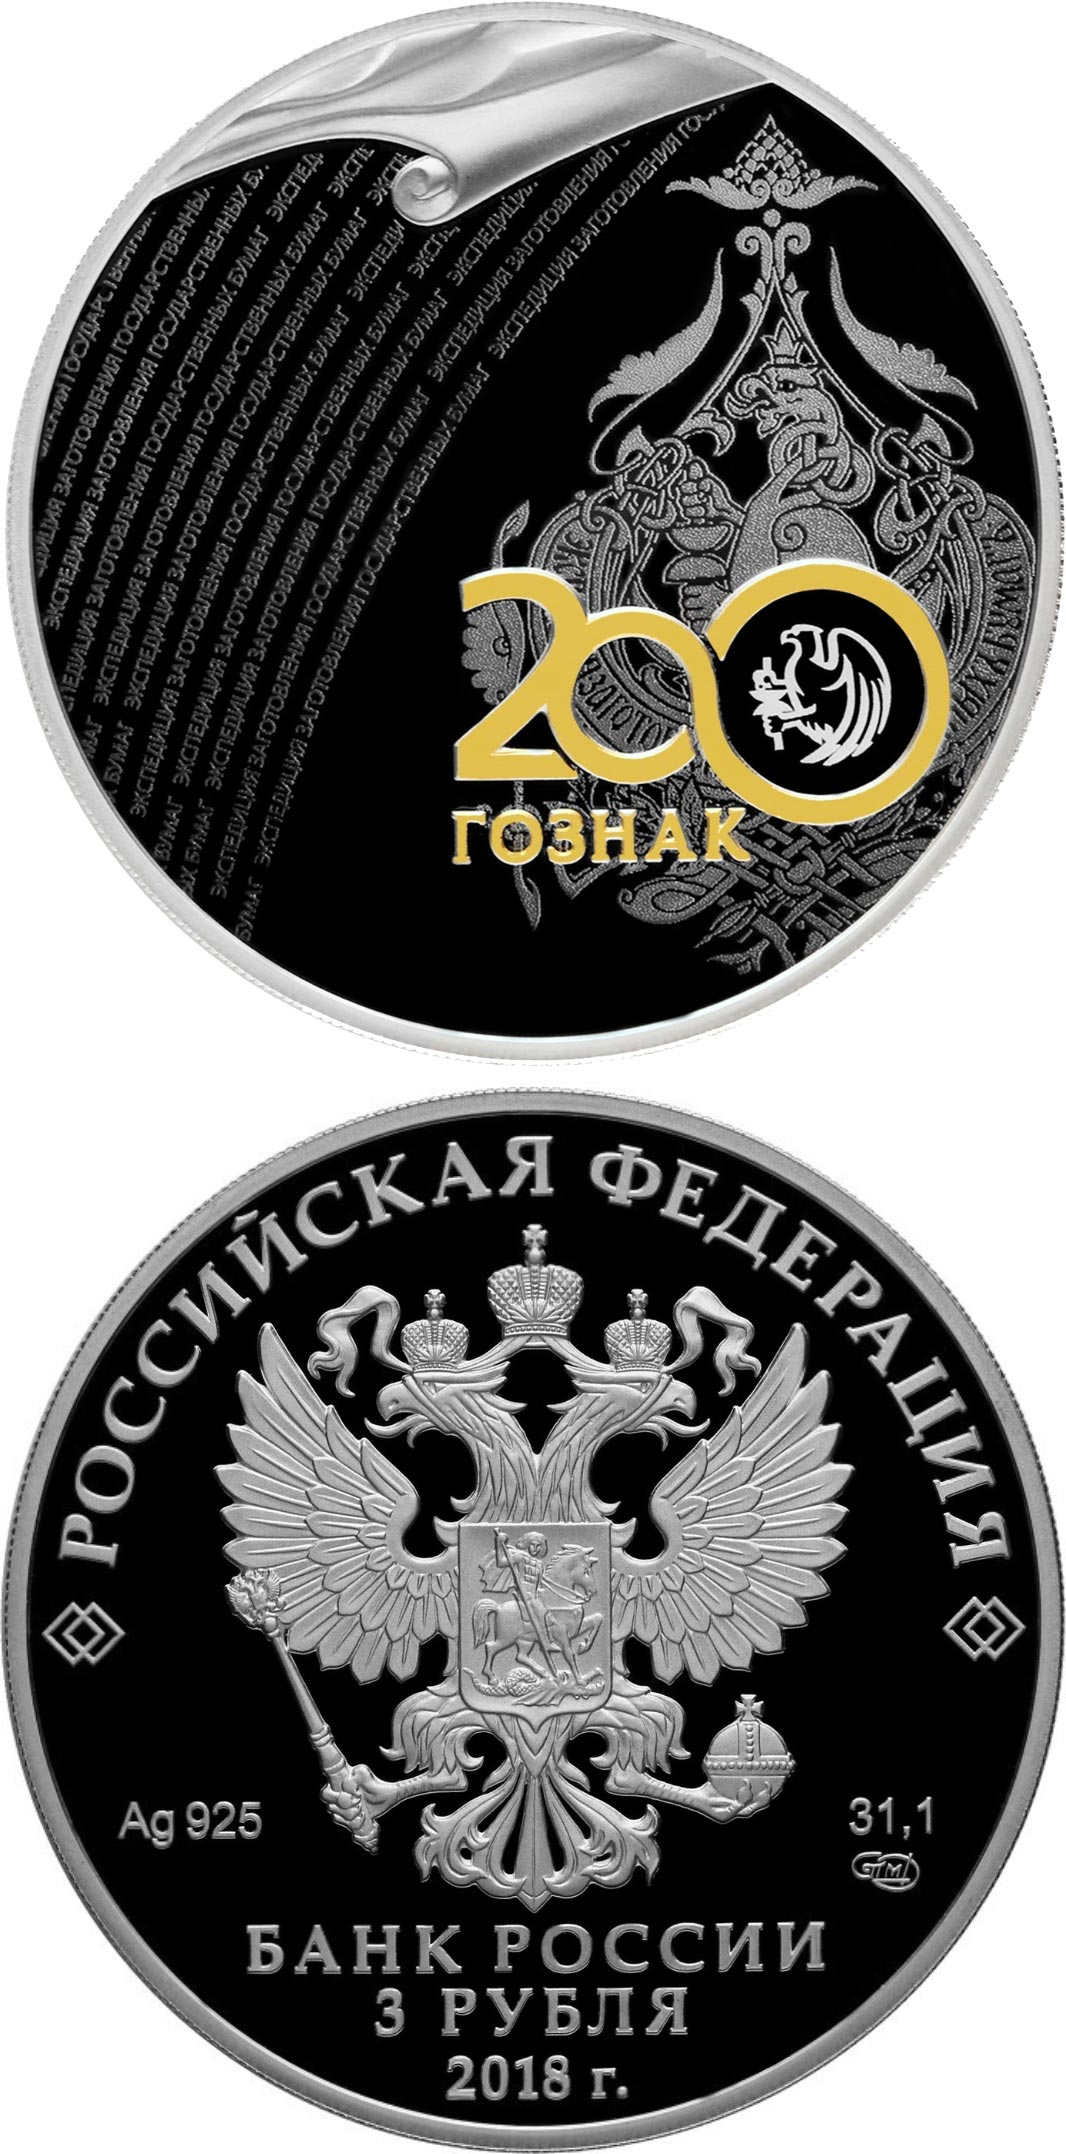 Image of 3 rubles coin - The Bicentenary of the Foundation of the Forwarding Agency of the State Paperstock | Russia 2018.  The Silver coin is of Proof quality.